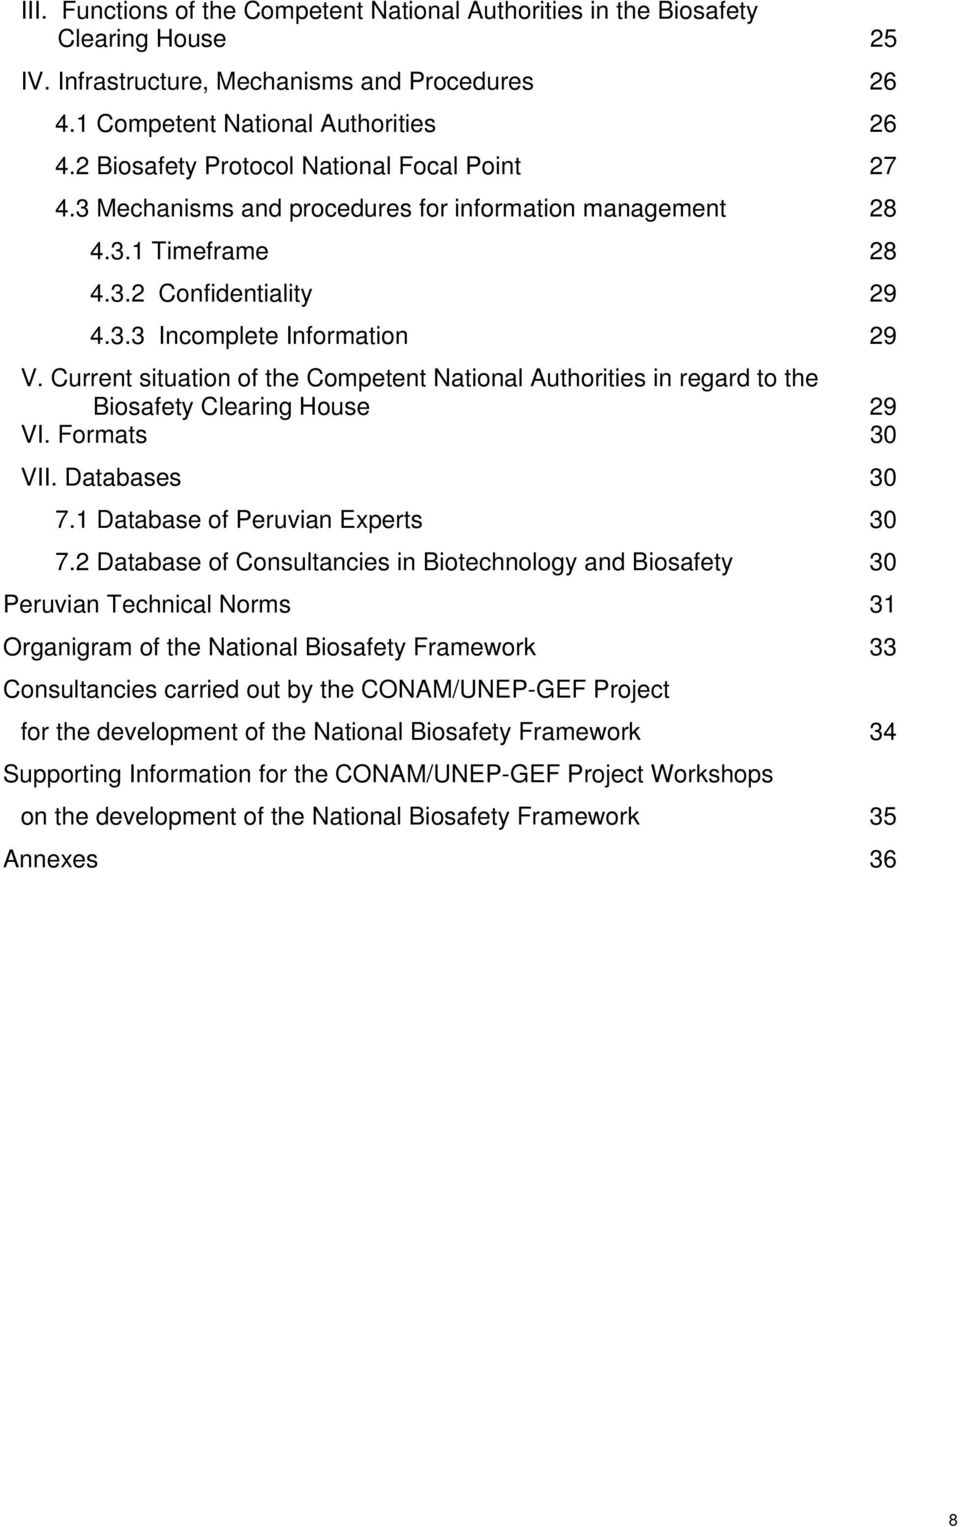 Current situation of the Competent National Authorities in regard to the Biosafety Clearing House 29 VI. Formats 30 VII. Databases 30 7.1 Database of Peruvian Experts 30 7.